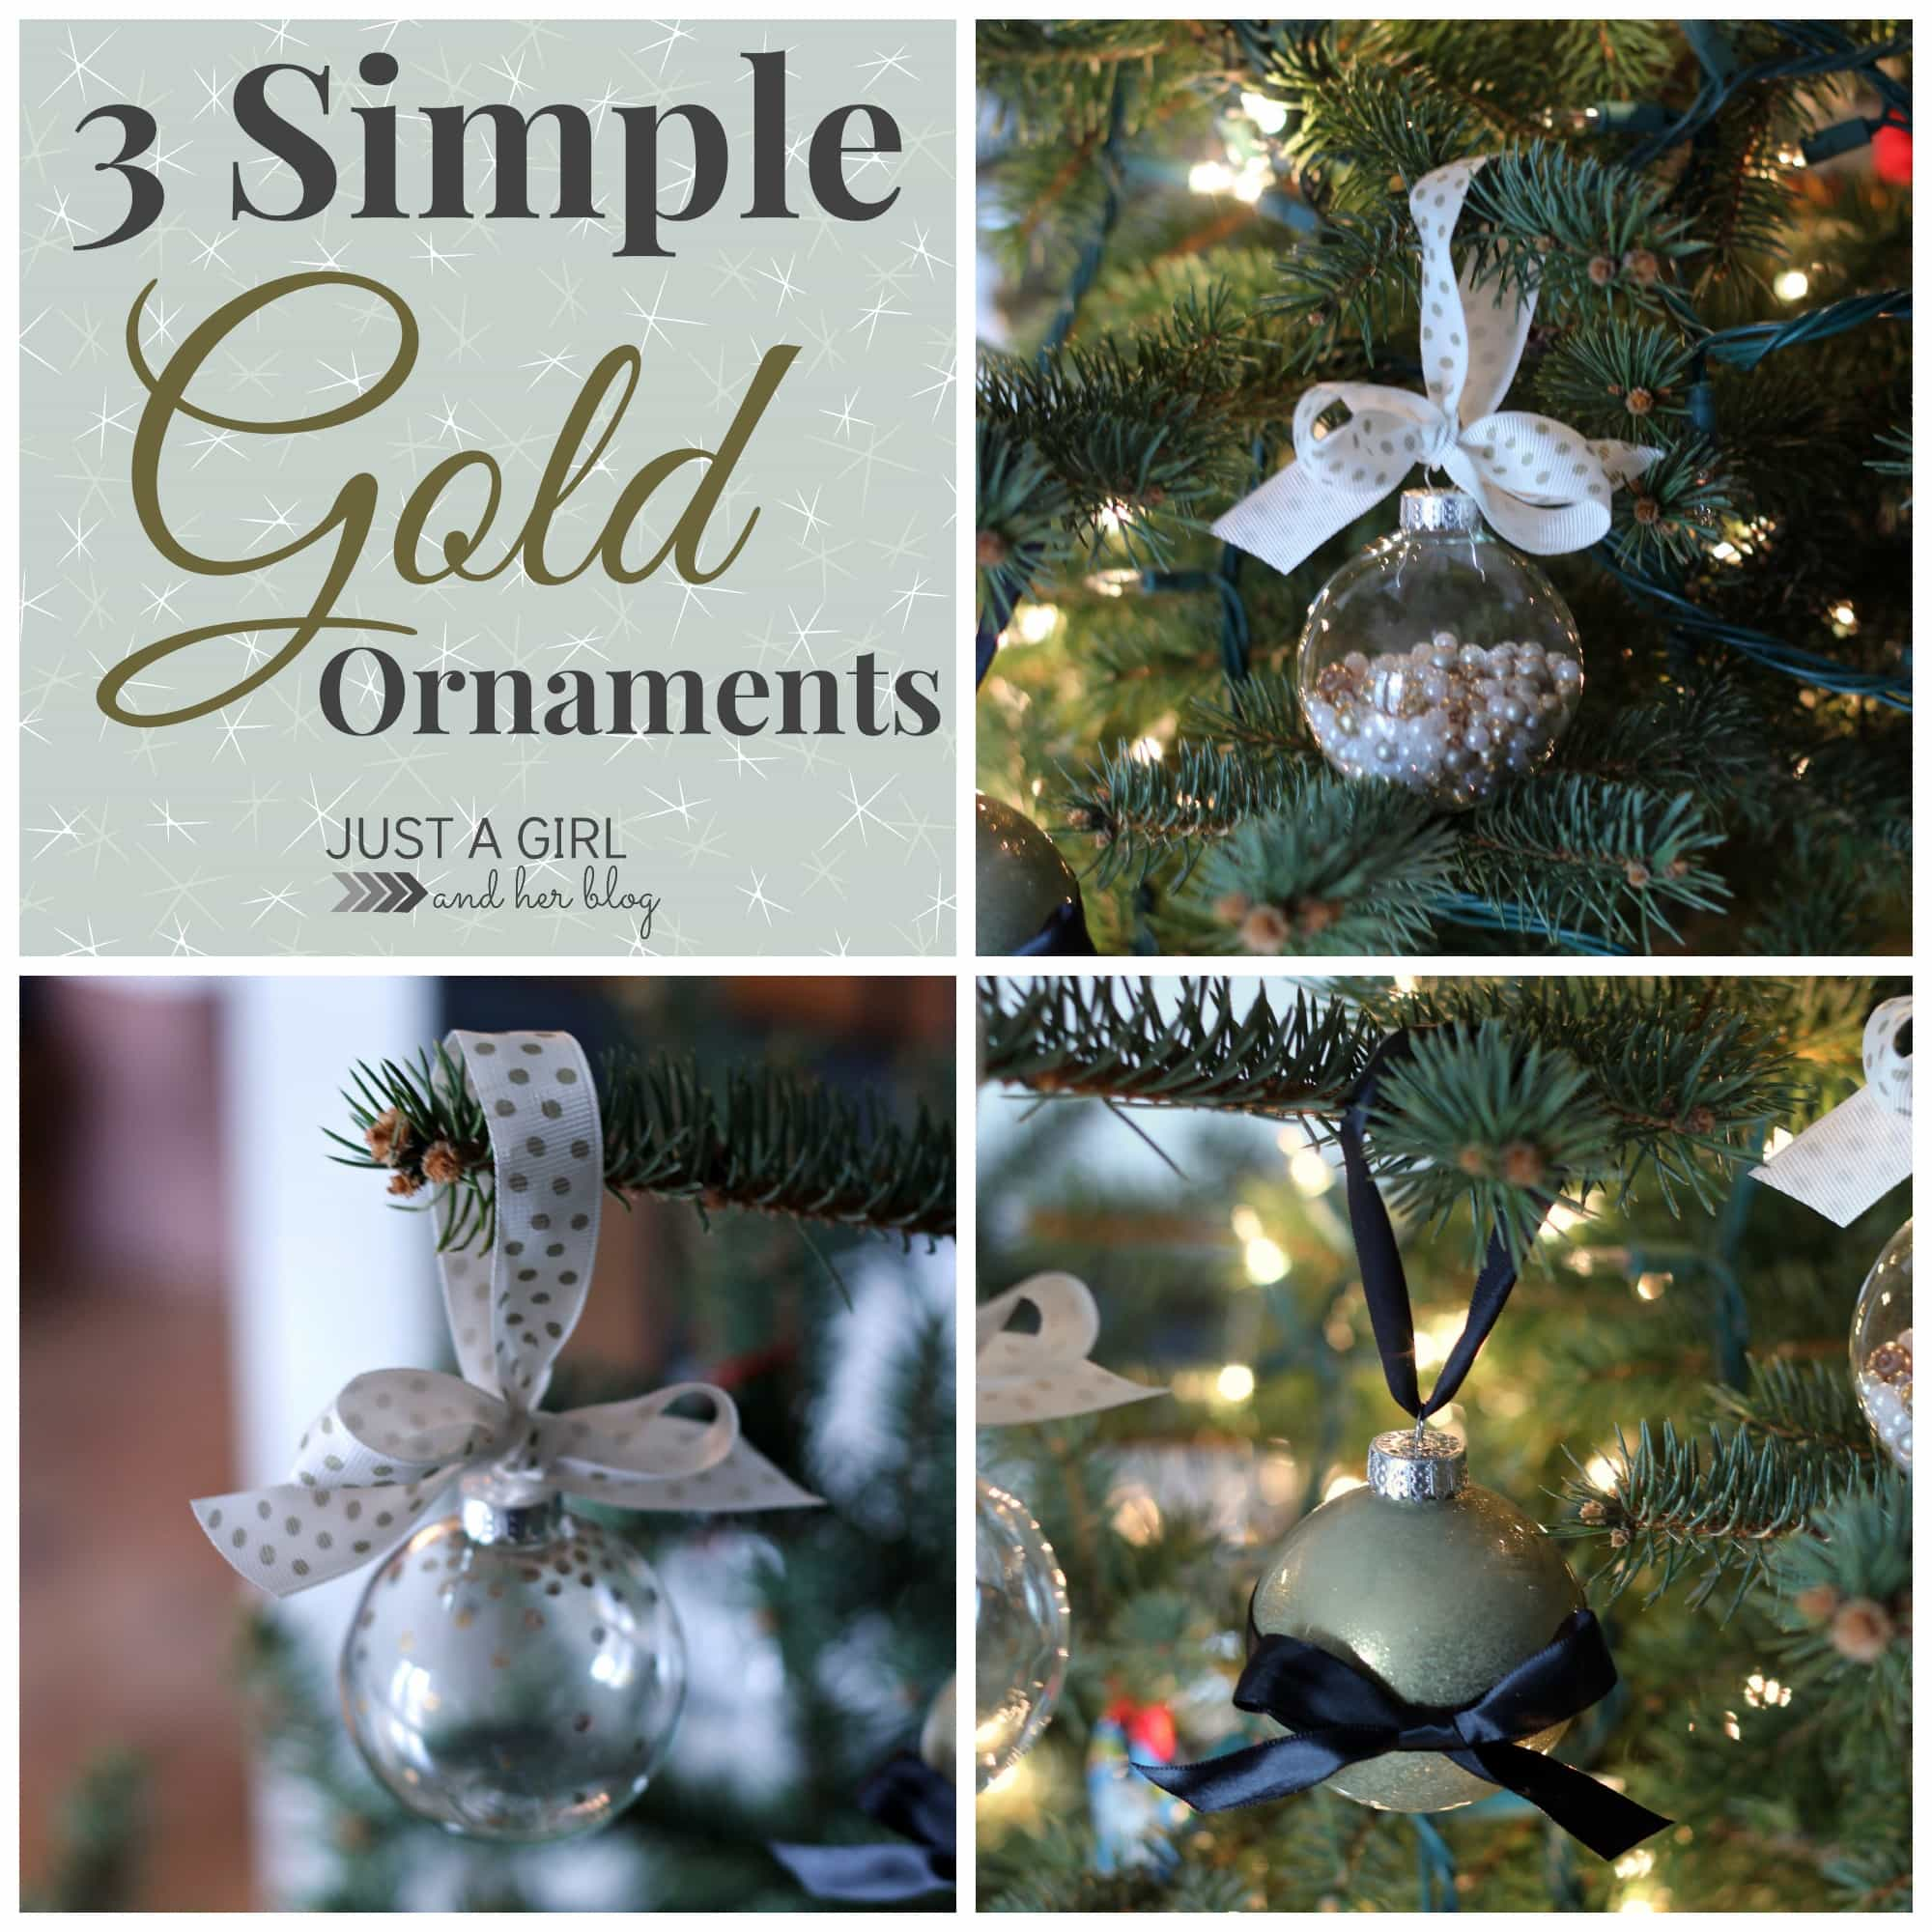 3 simple gold ornaments just a girl and her blog